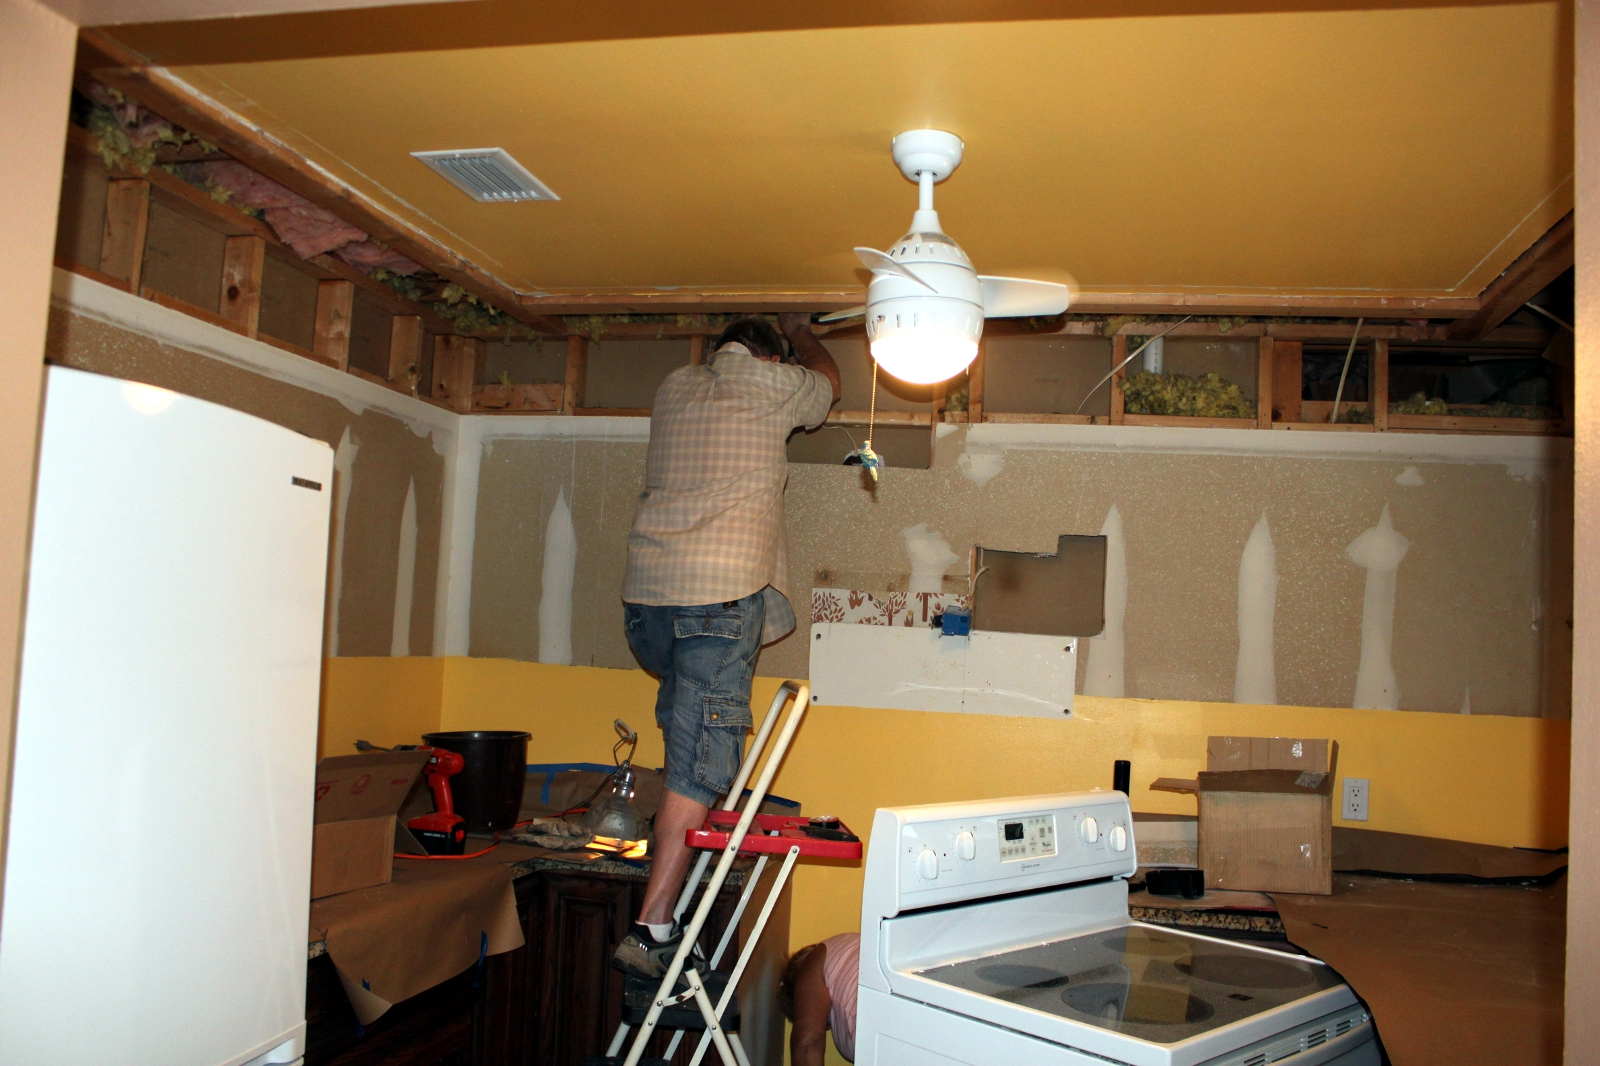 Electrical Wiring Lanailens Scary Daddy And Zack Completed Demo On The Upper Cabinets Yesterday Used Power Tools